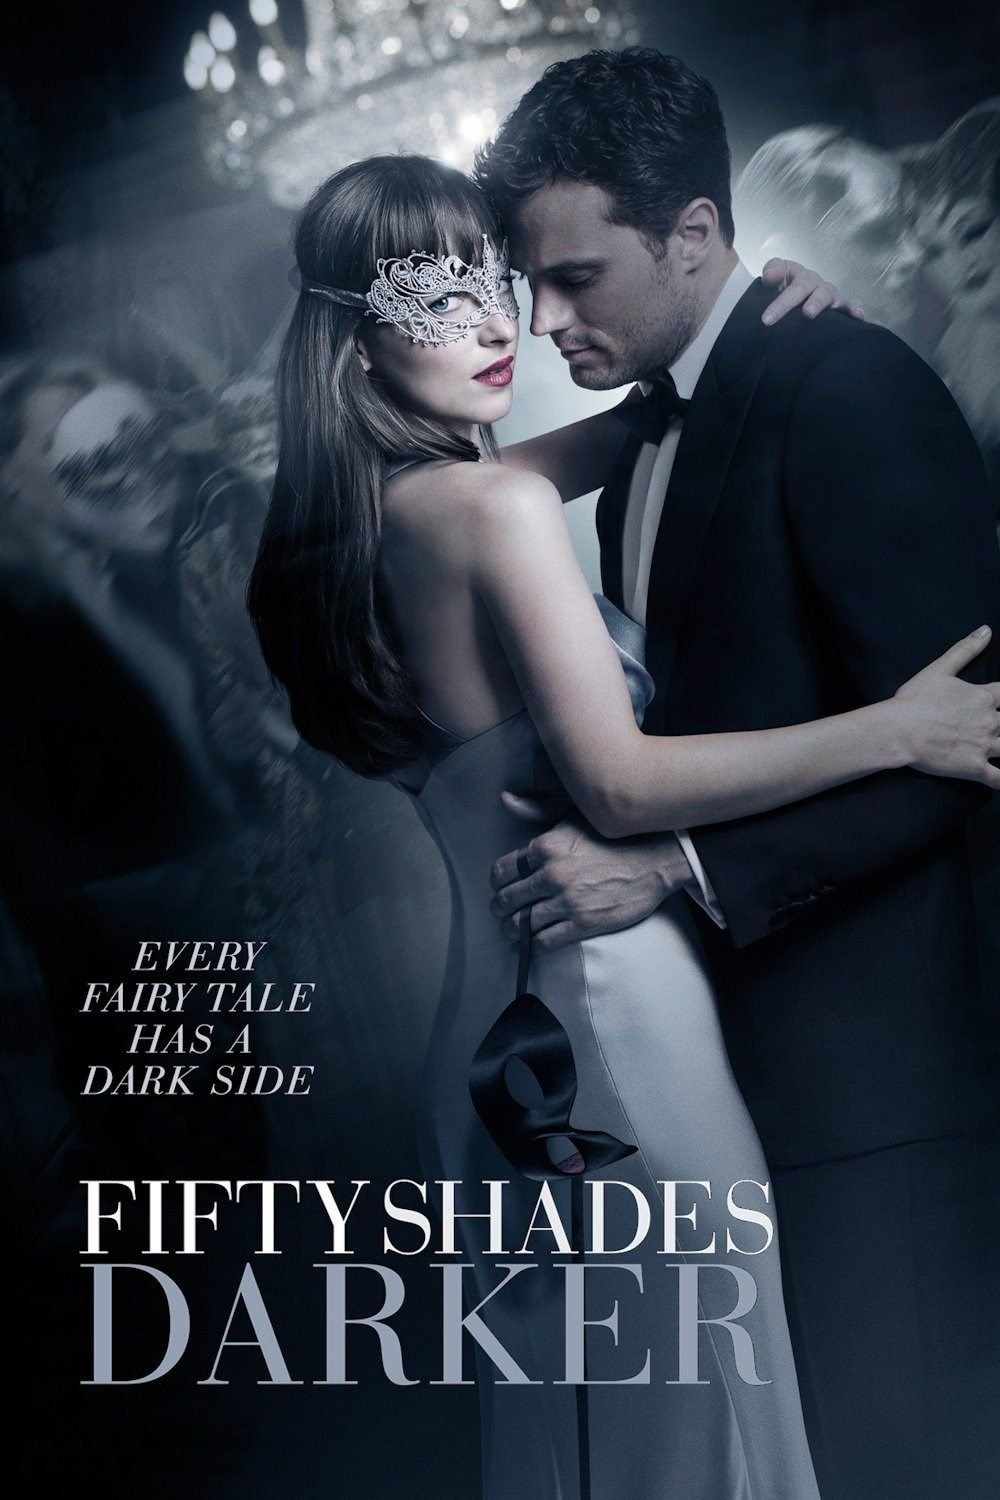 Nonton Fifty Shades Darker : nonton, fifty, shades, darker, Nonton, Fifty, Shades, Darker, (2017), Shades,, Basinger,, Dakota, Johnson